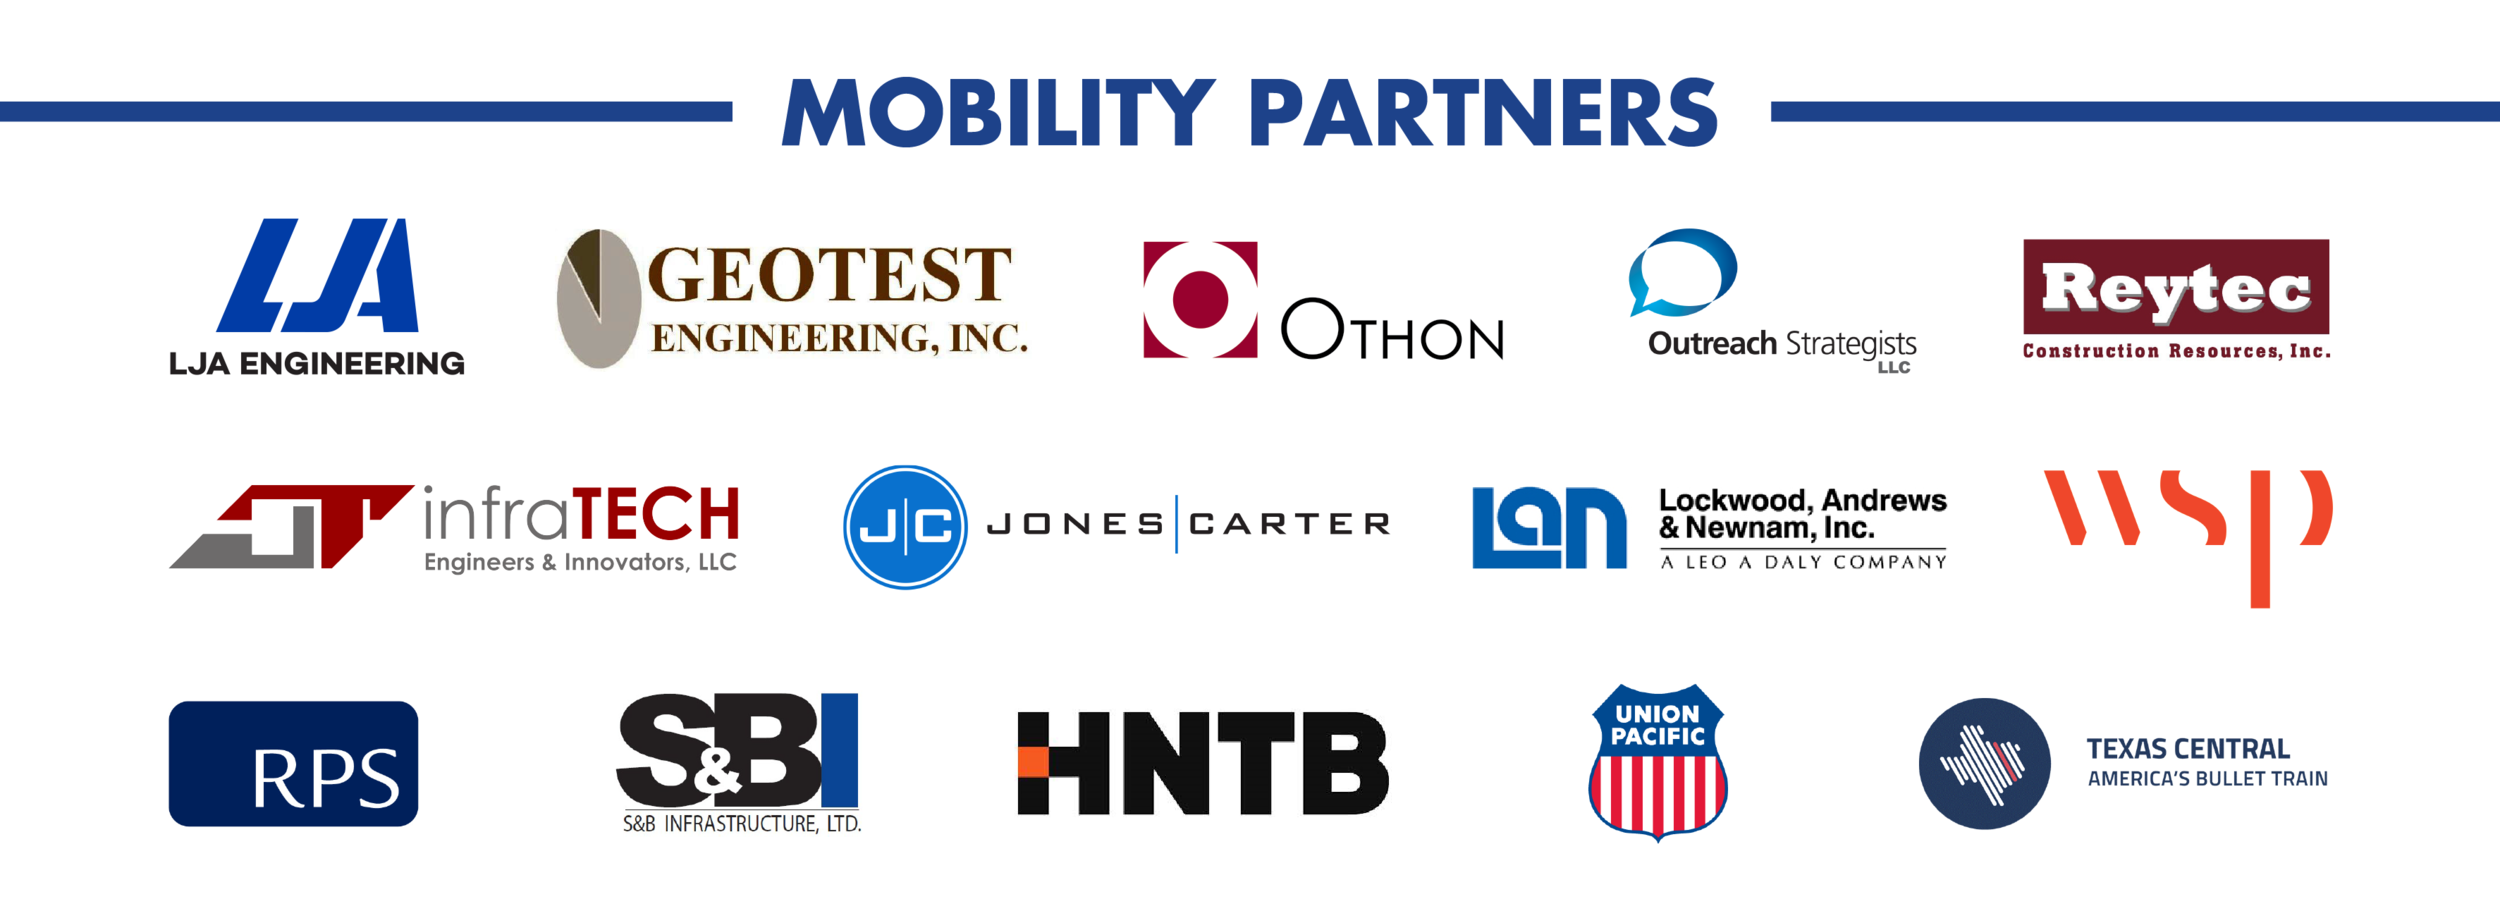 Mobility Partners_FB (1).PNG